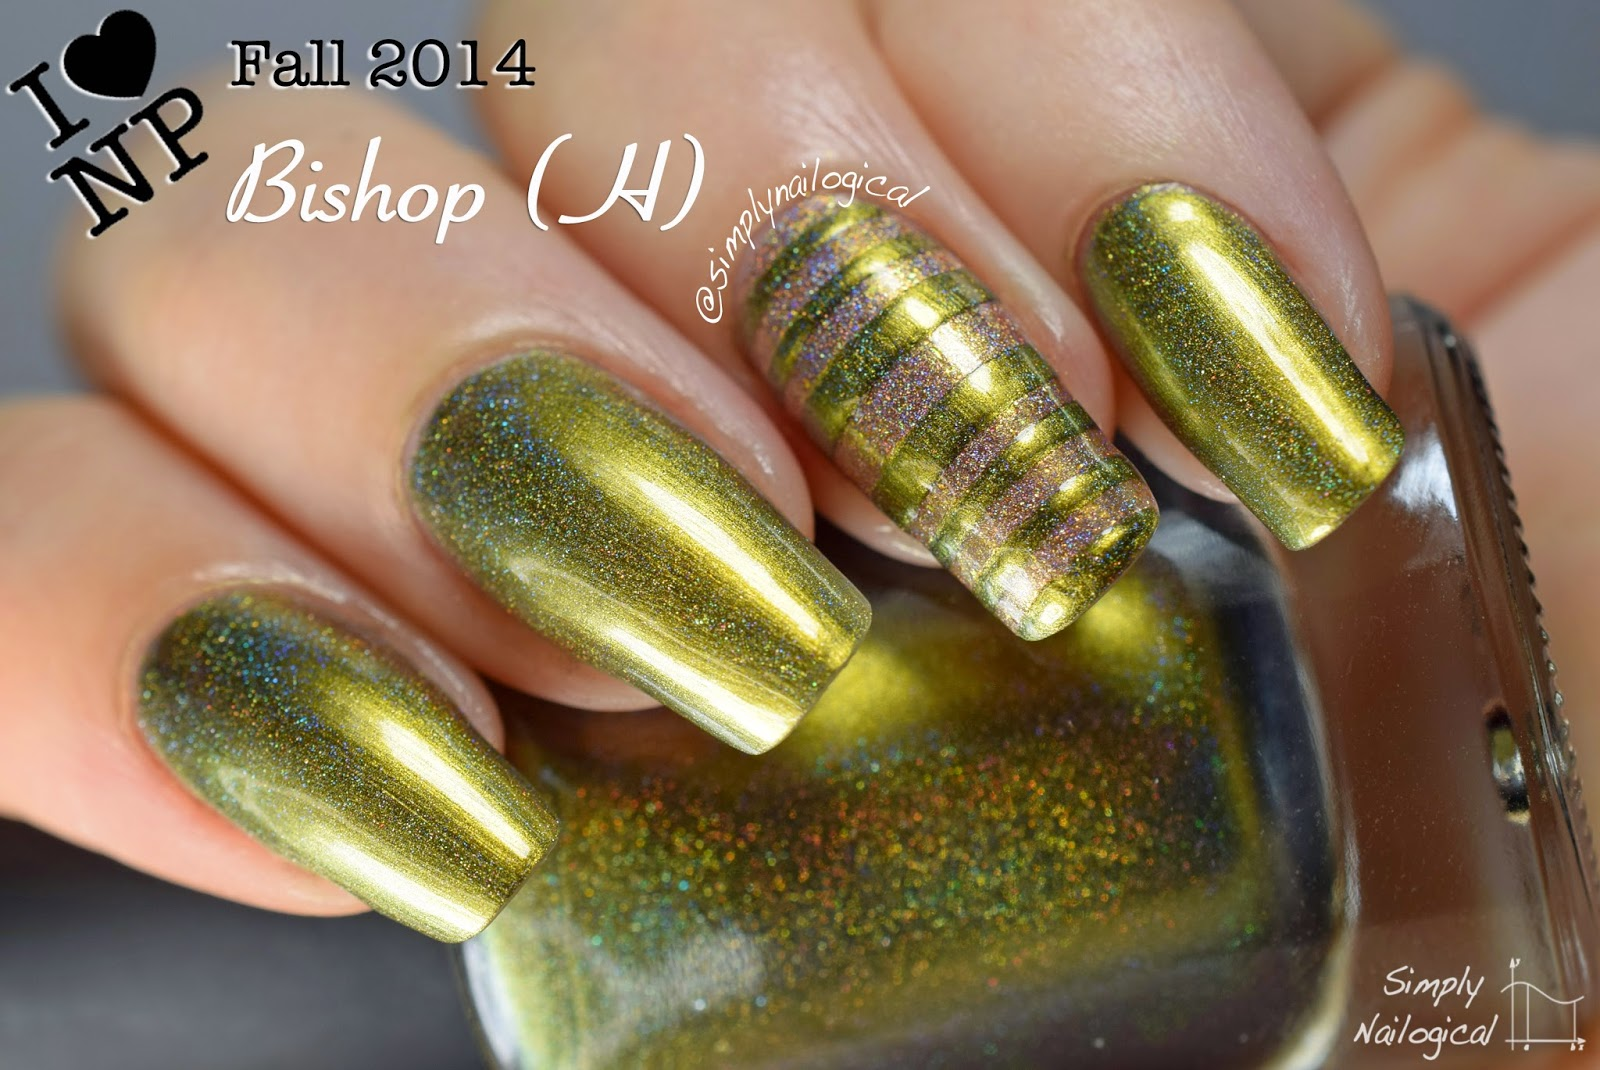 Bishop (H)  - ILNP Fall 2014 collection swatch